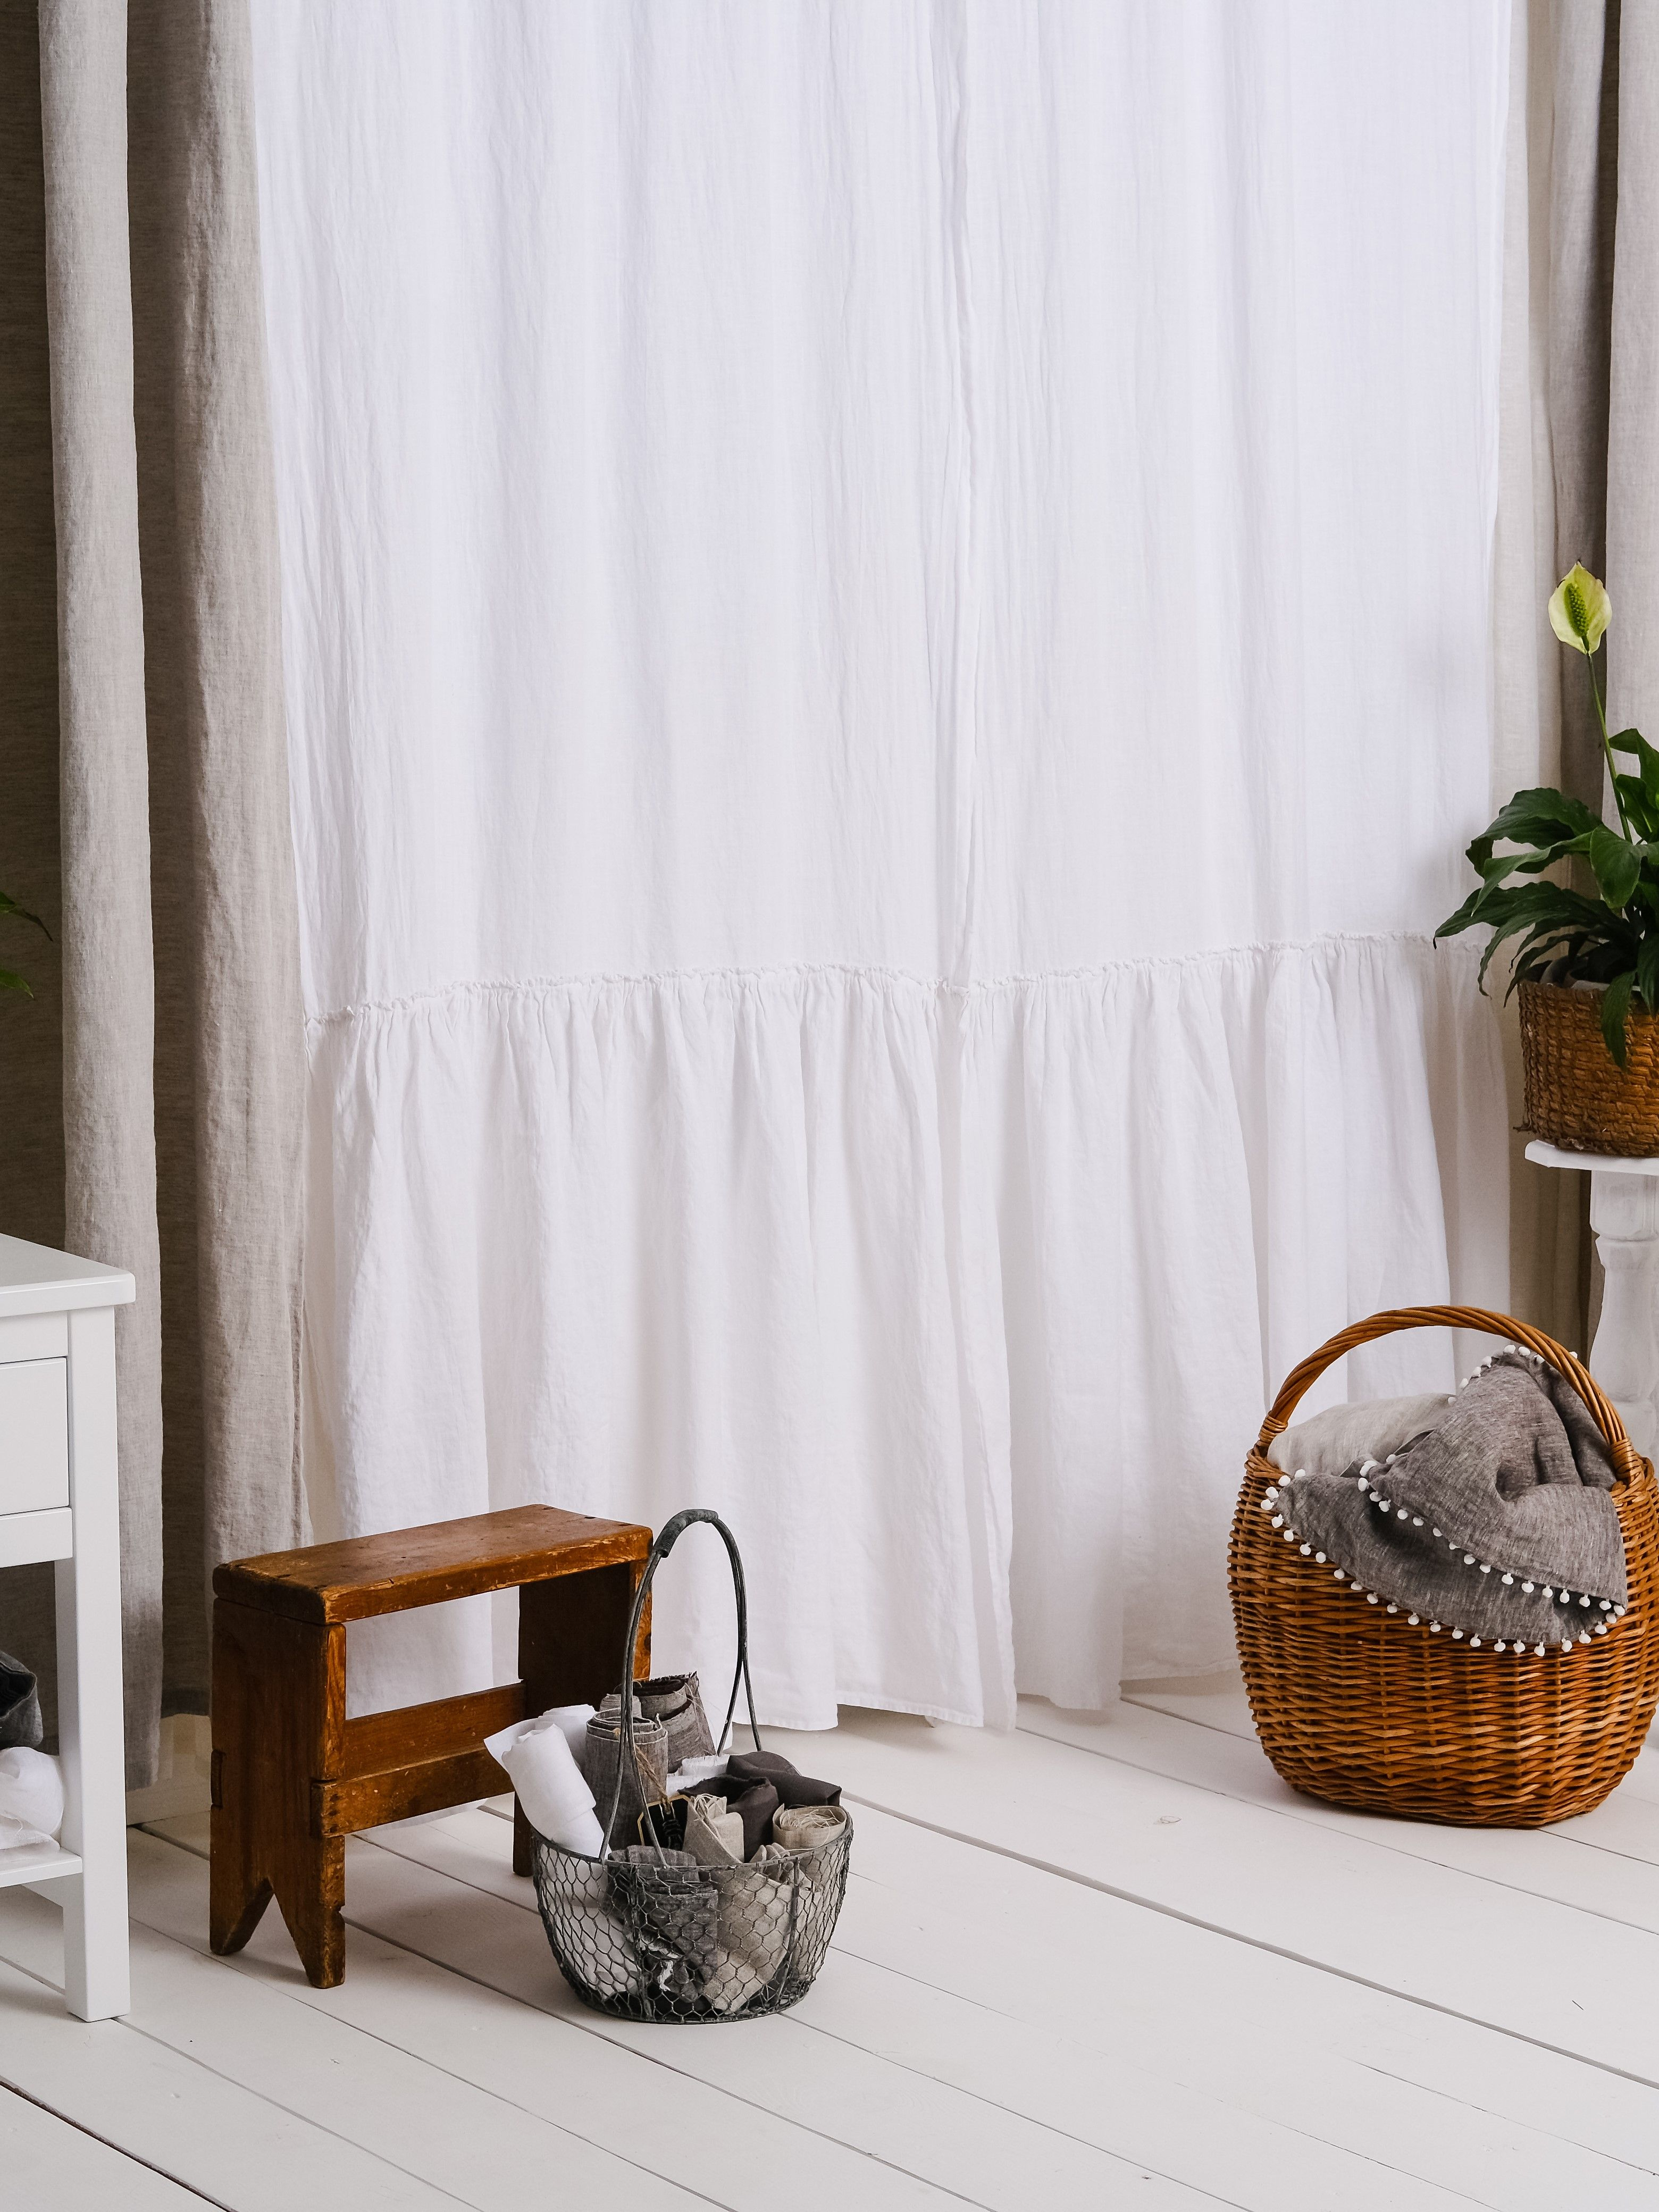 Luxury 100% Linen Farmhouse Ruffle Linen Curtain Panels Set Throughout Signature French Linen Curtain Panels (View 21 of 30)